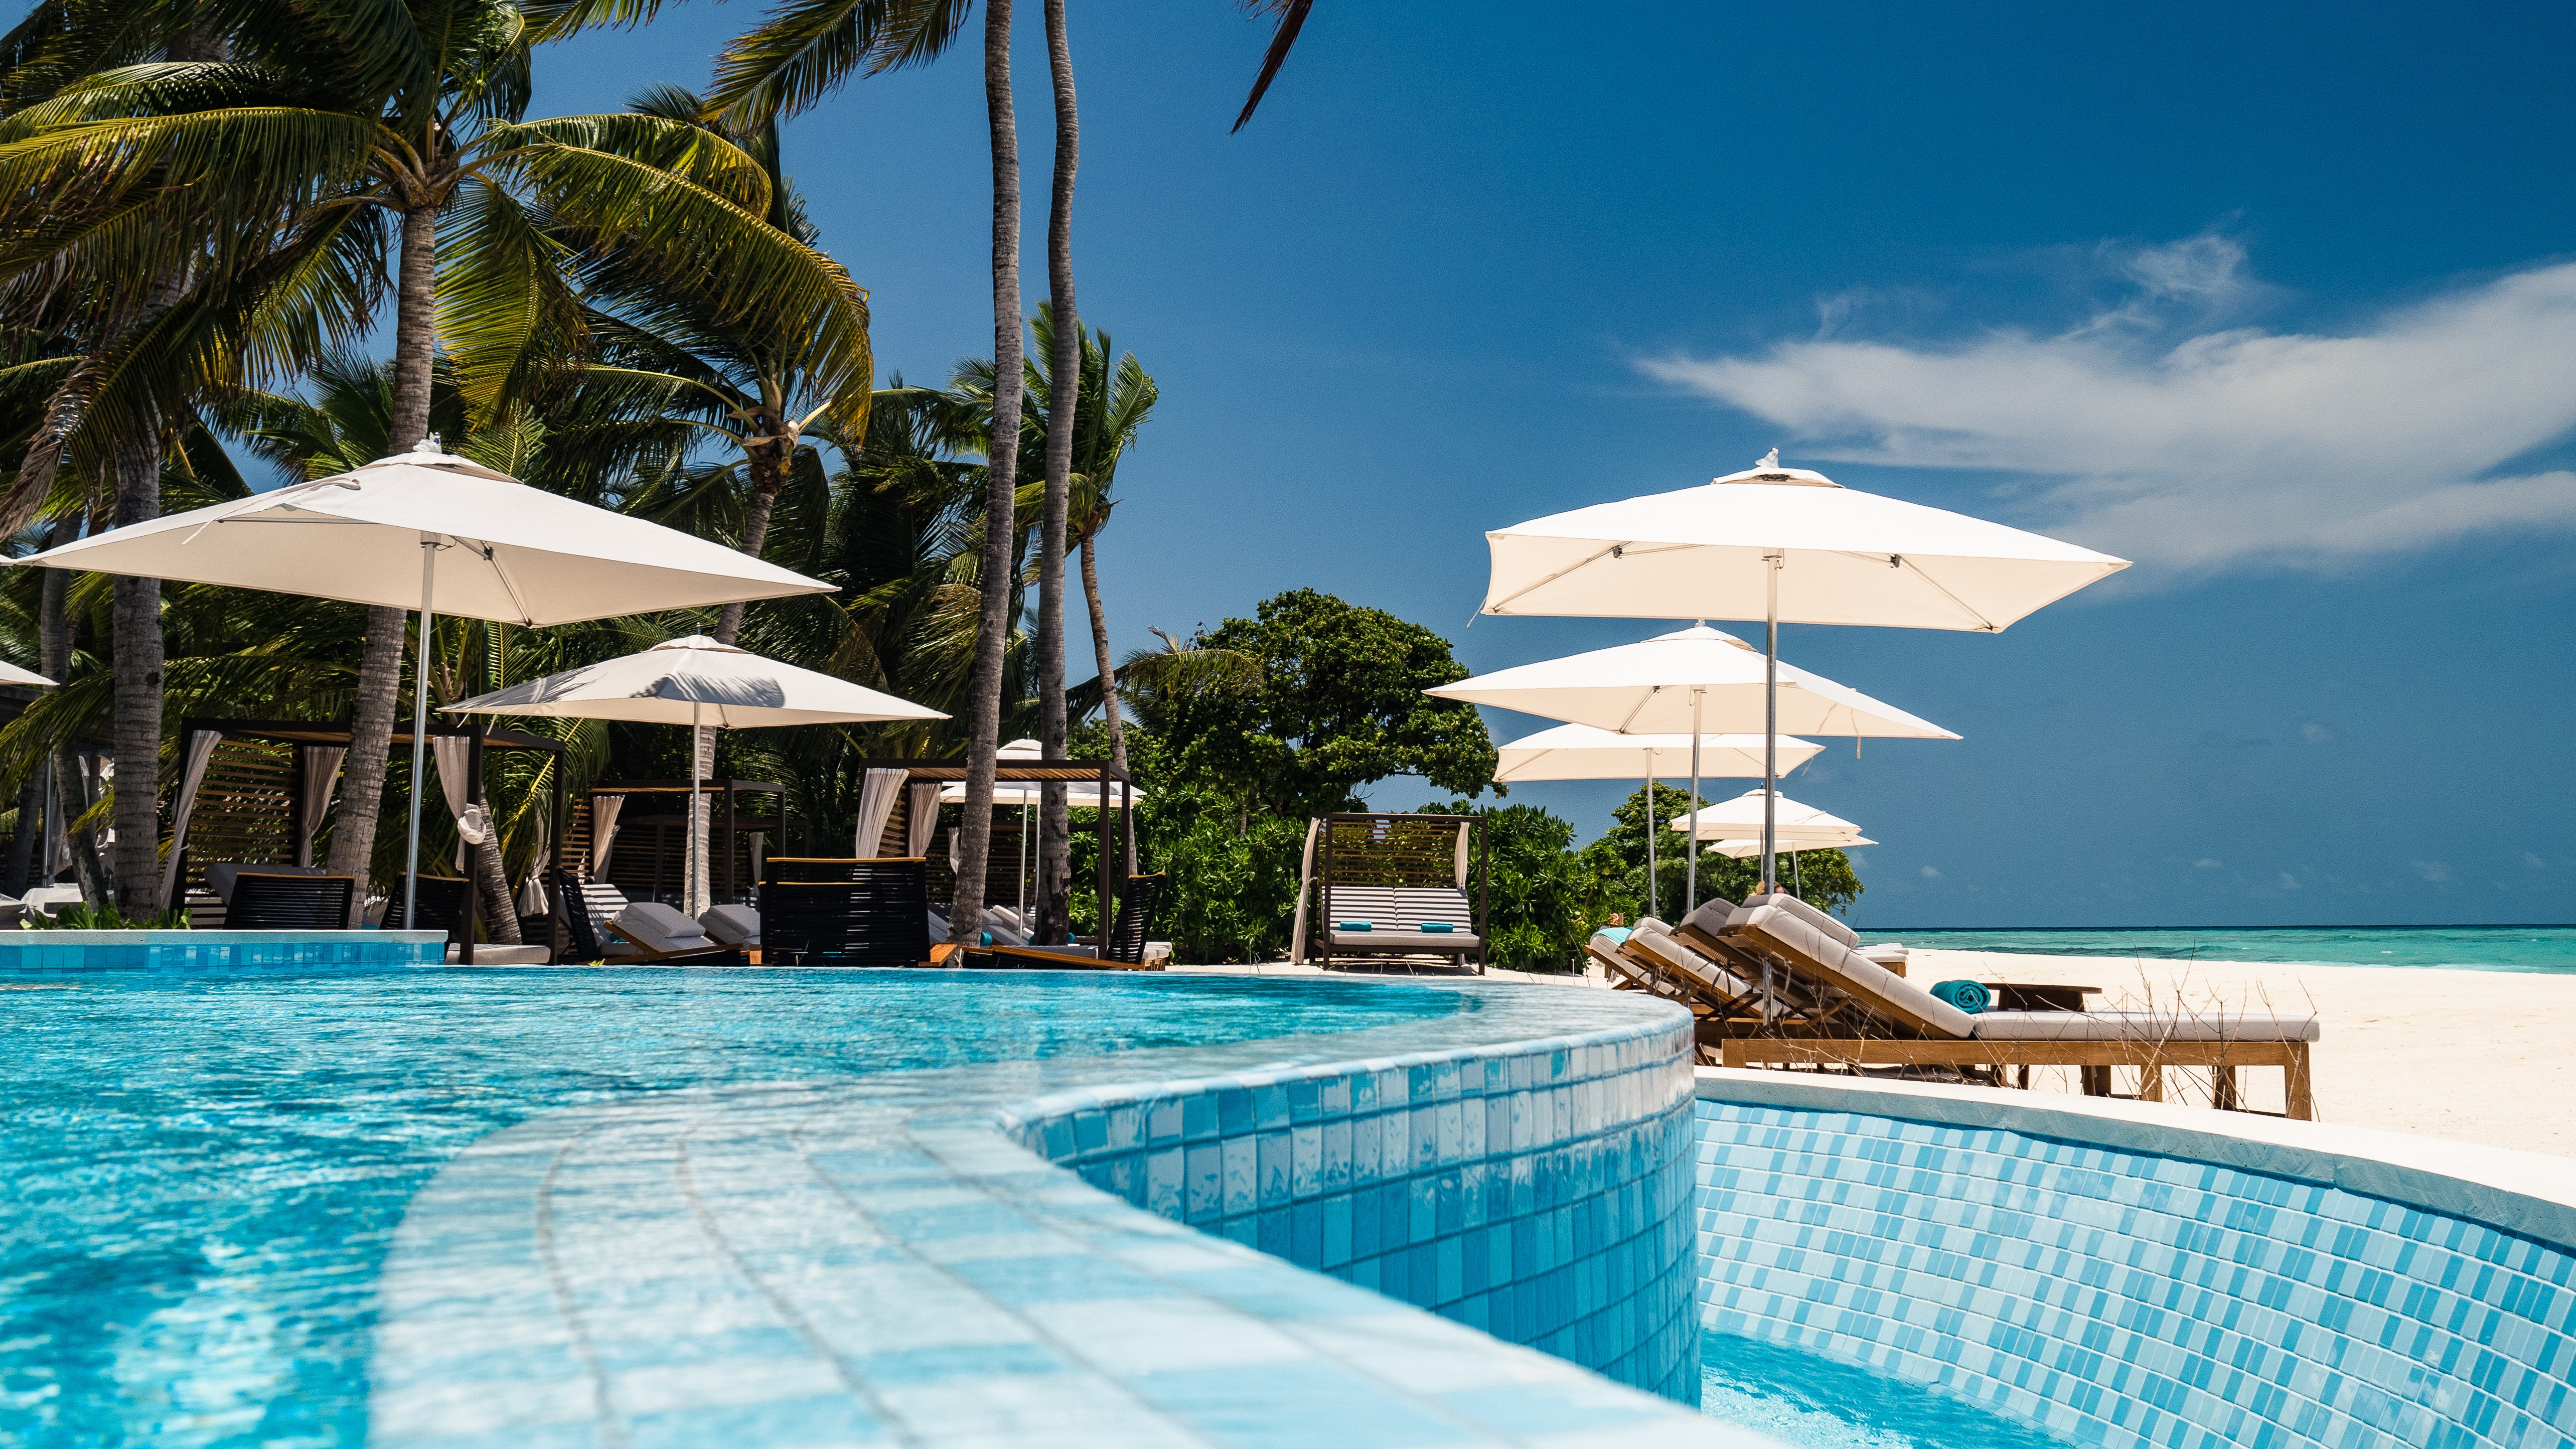 Should you use points or cash to book hotels?